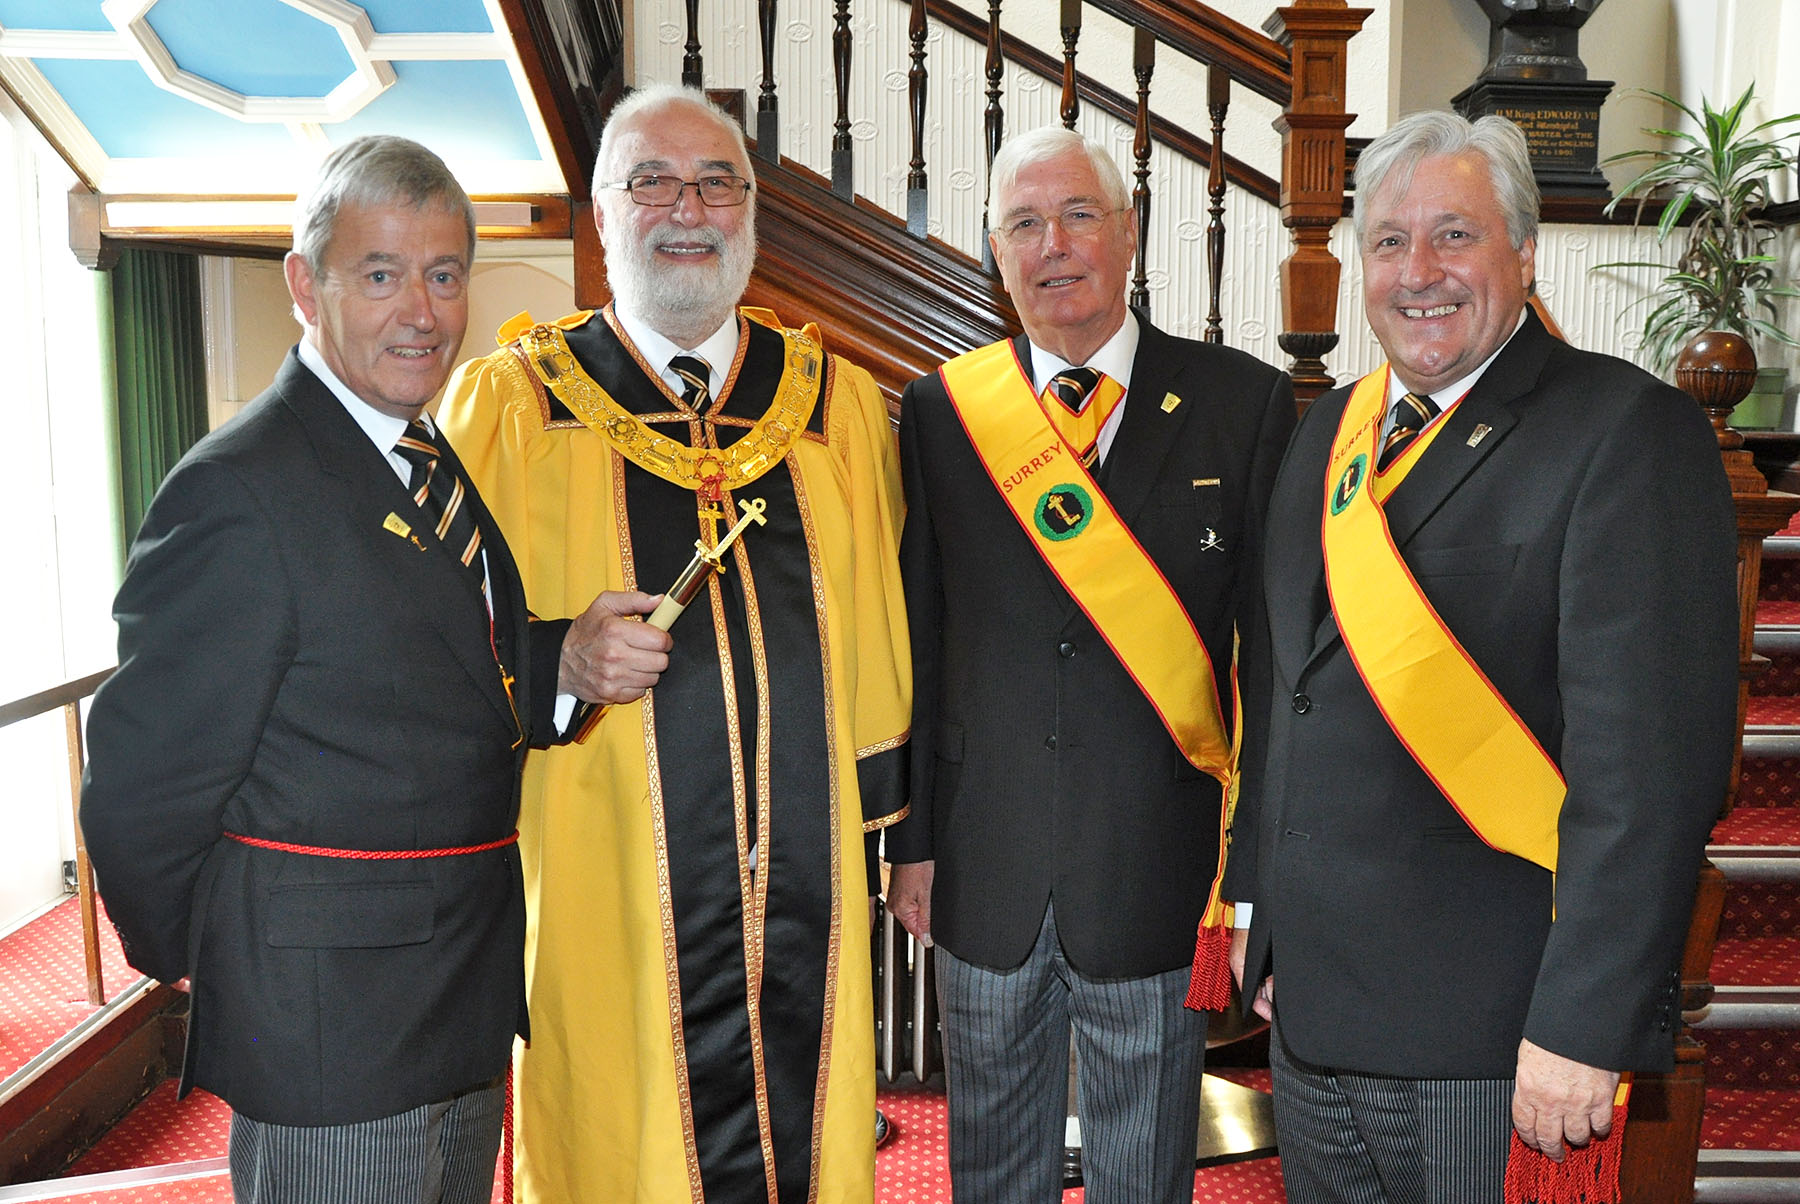 Surrey Mark supports the Ancient and Masonic Order of the Scarlet Cord